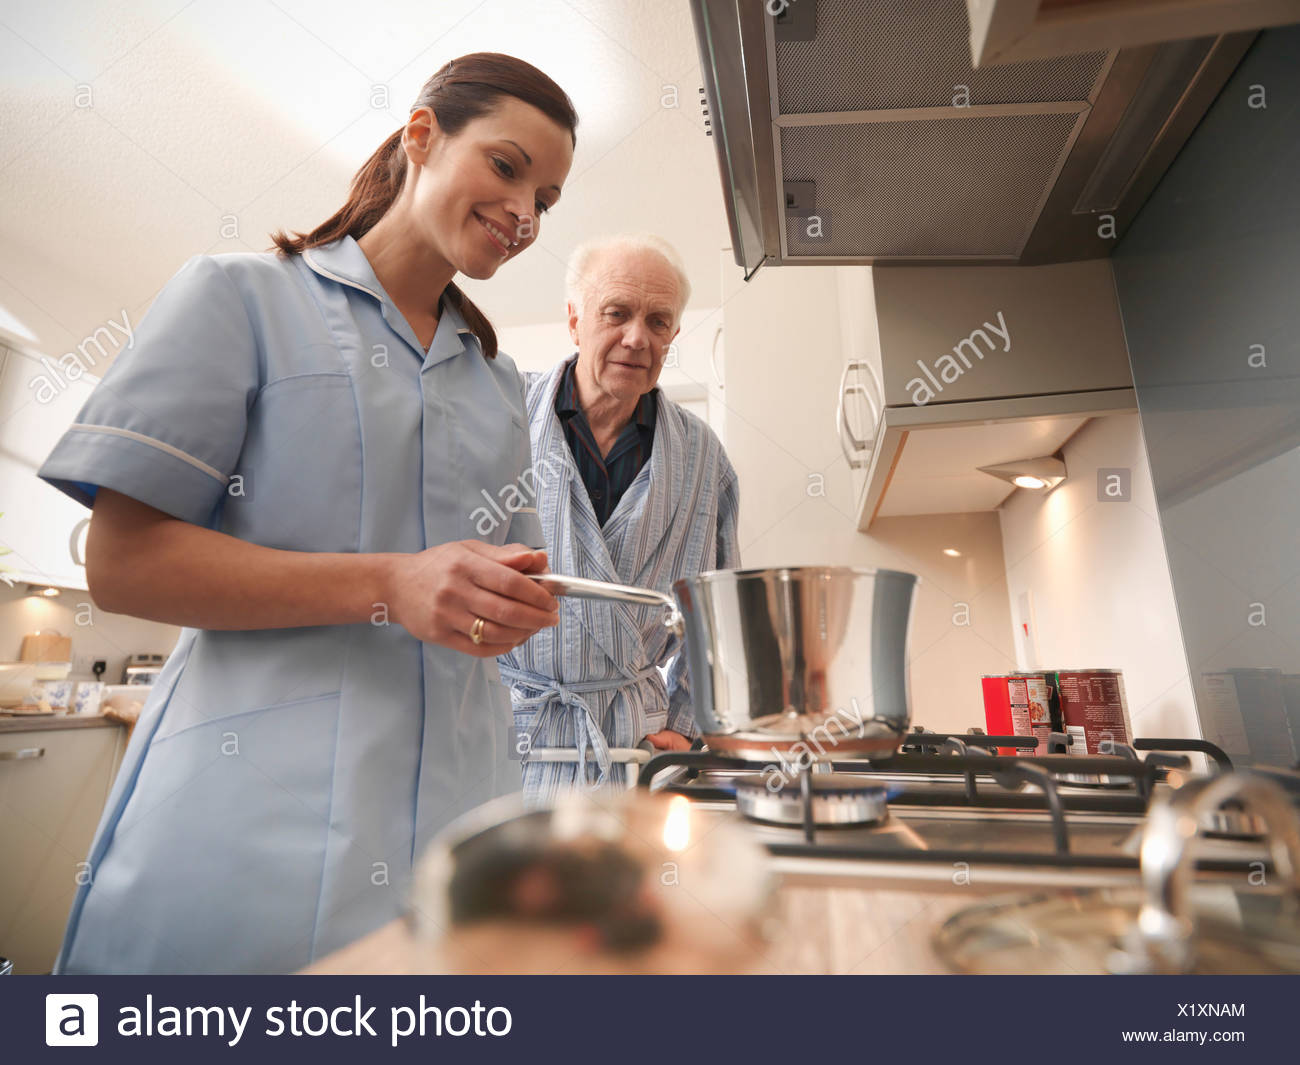 Nurse cooking for older man in kitchen Stock Photo